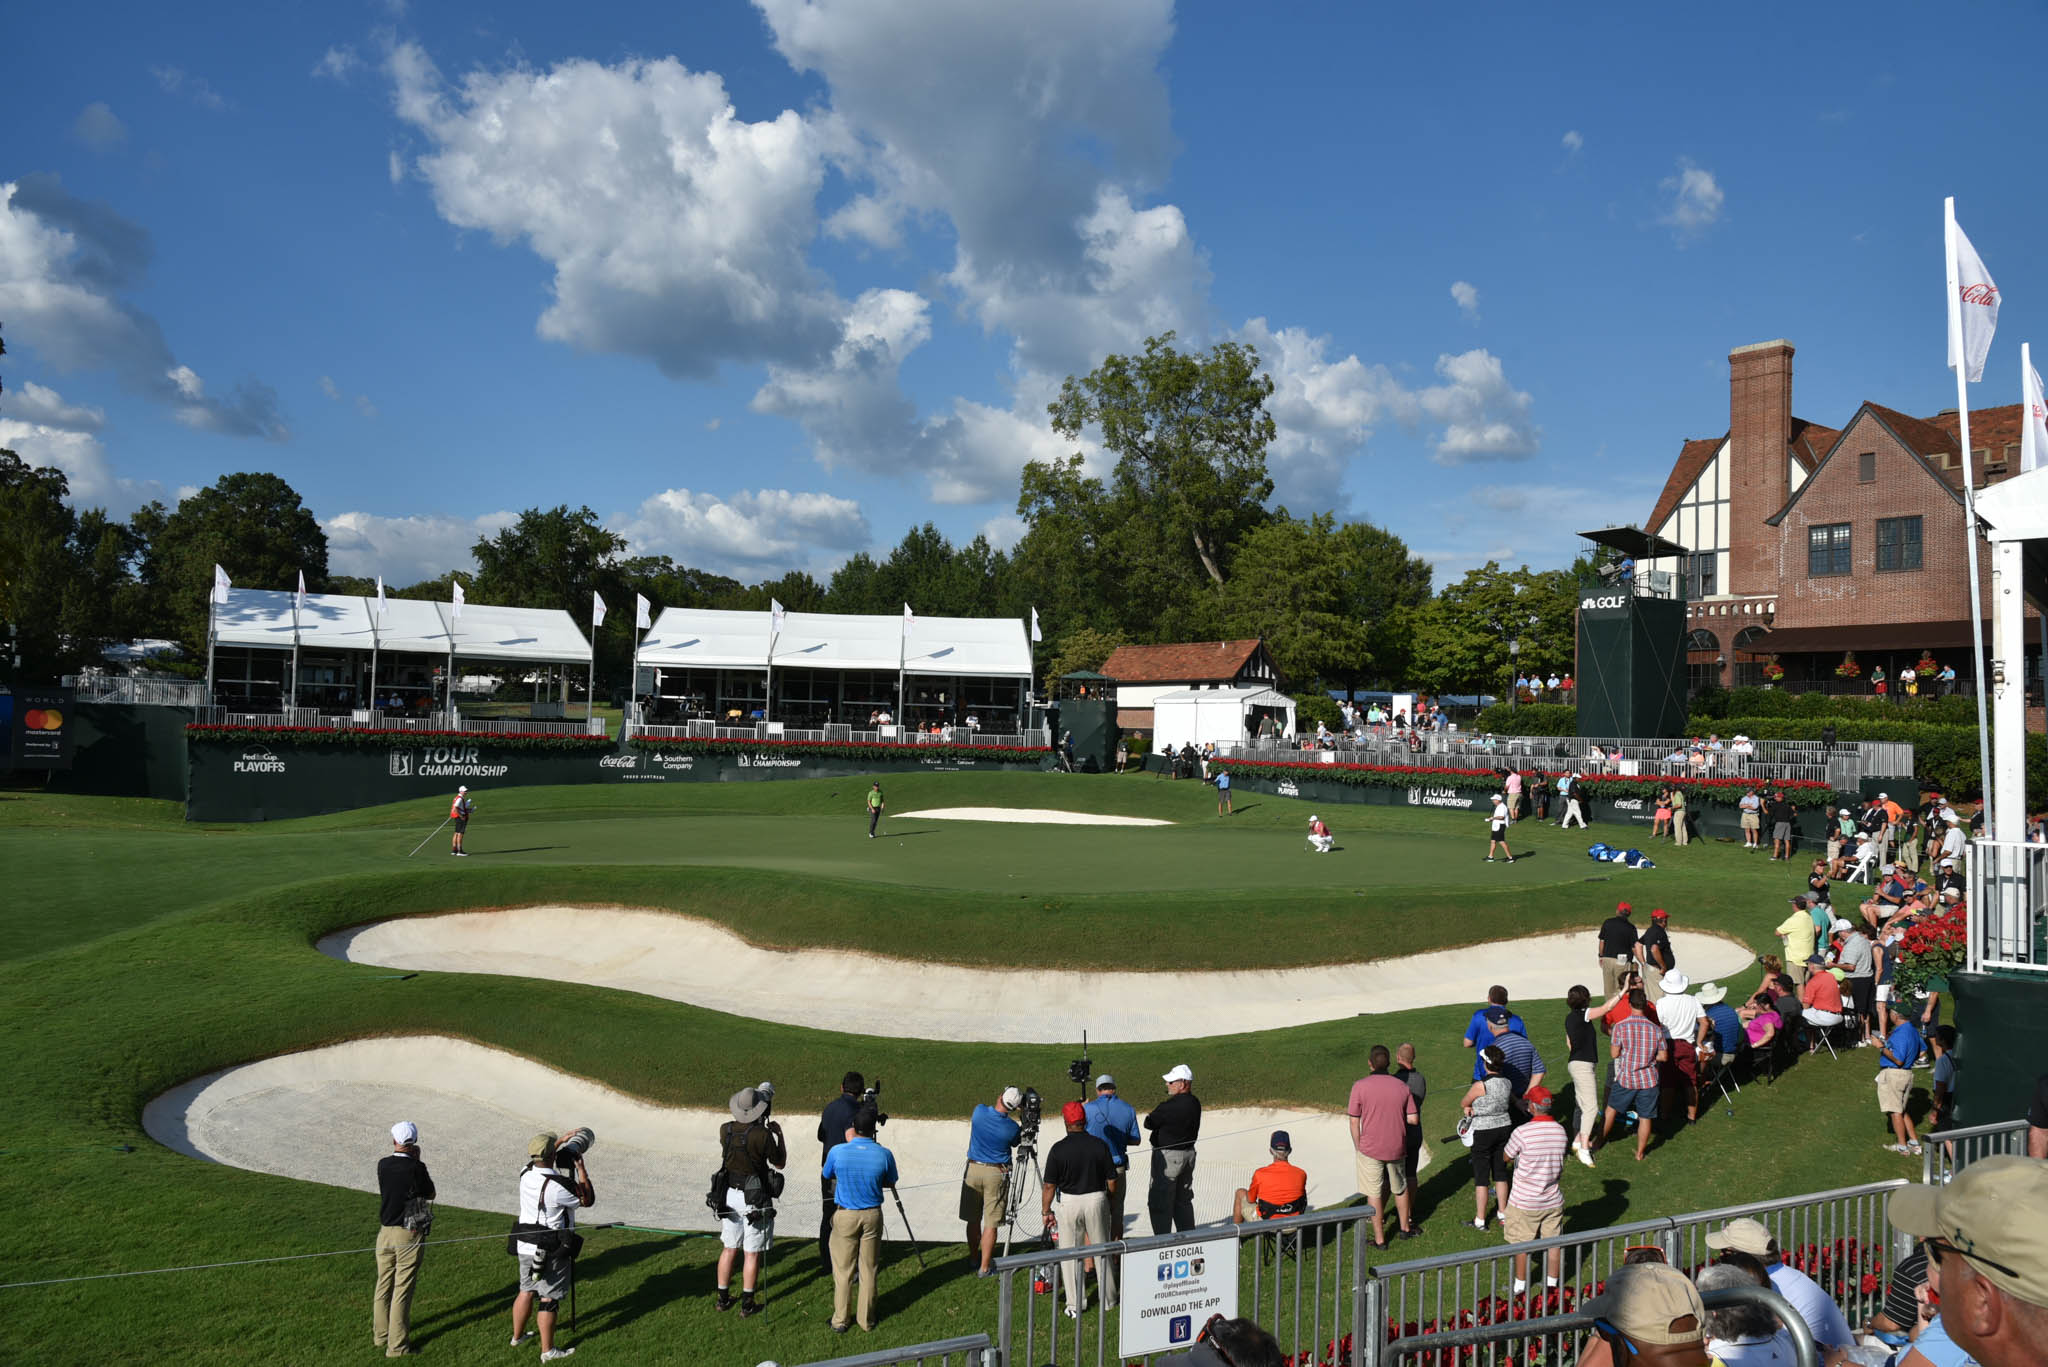 Amazon Web Services inks deal with the PGA Tour, its latest cloud computing sports deal